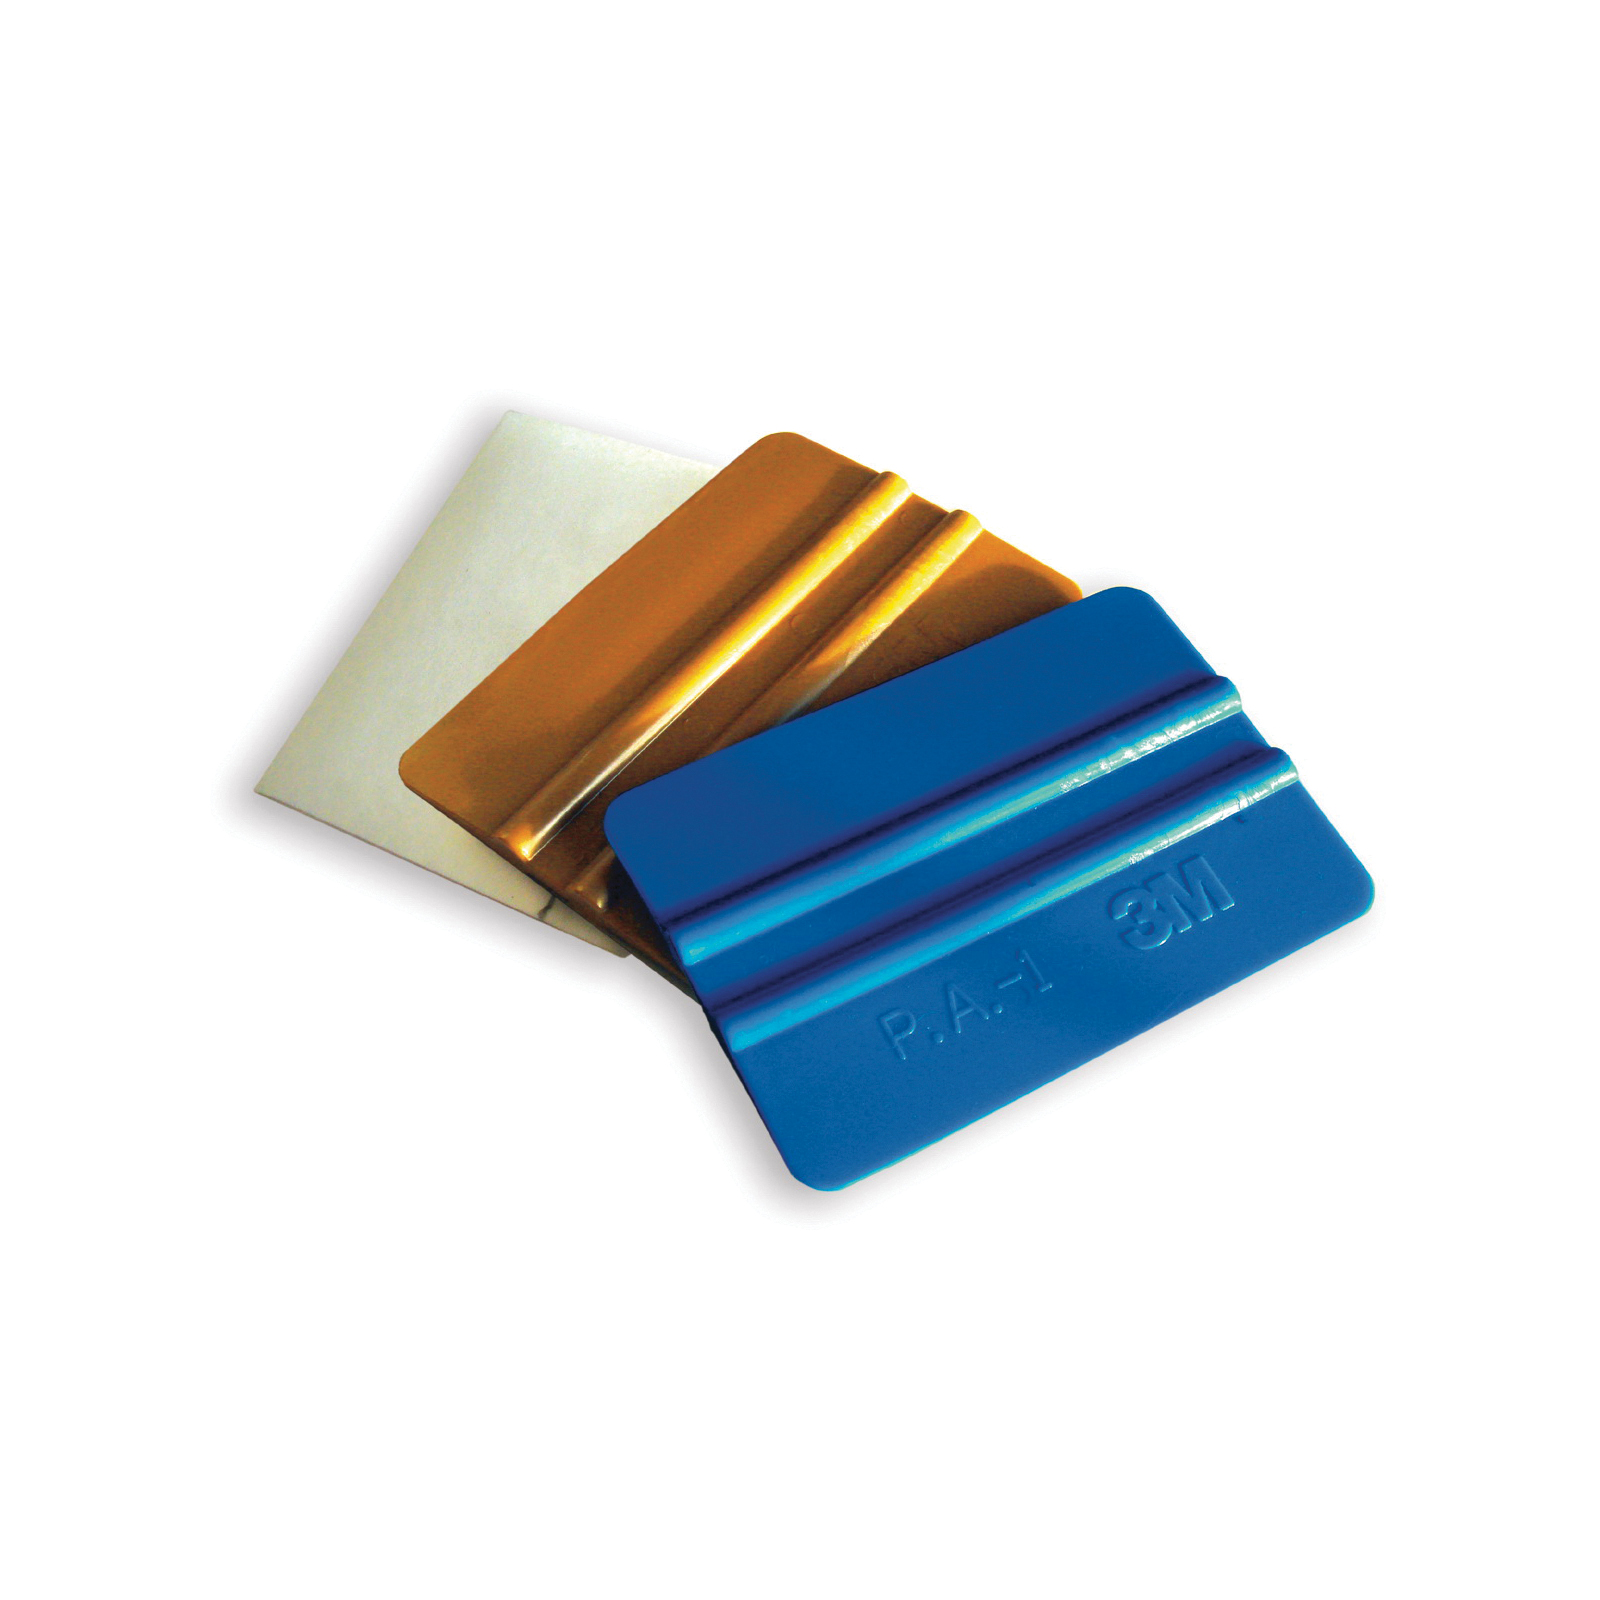 3M™ 051128-09206 PA1Blue Hand Applicator Squeegee, 4 in L x 2-3/4 in W